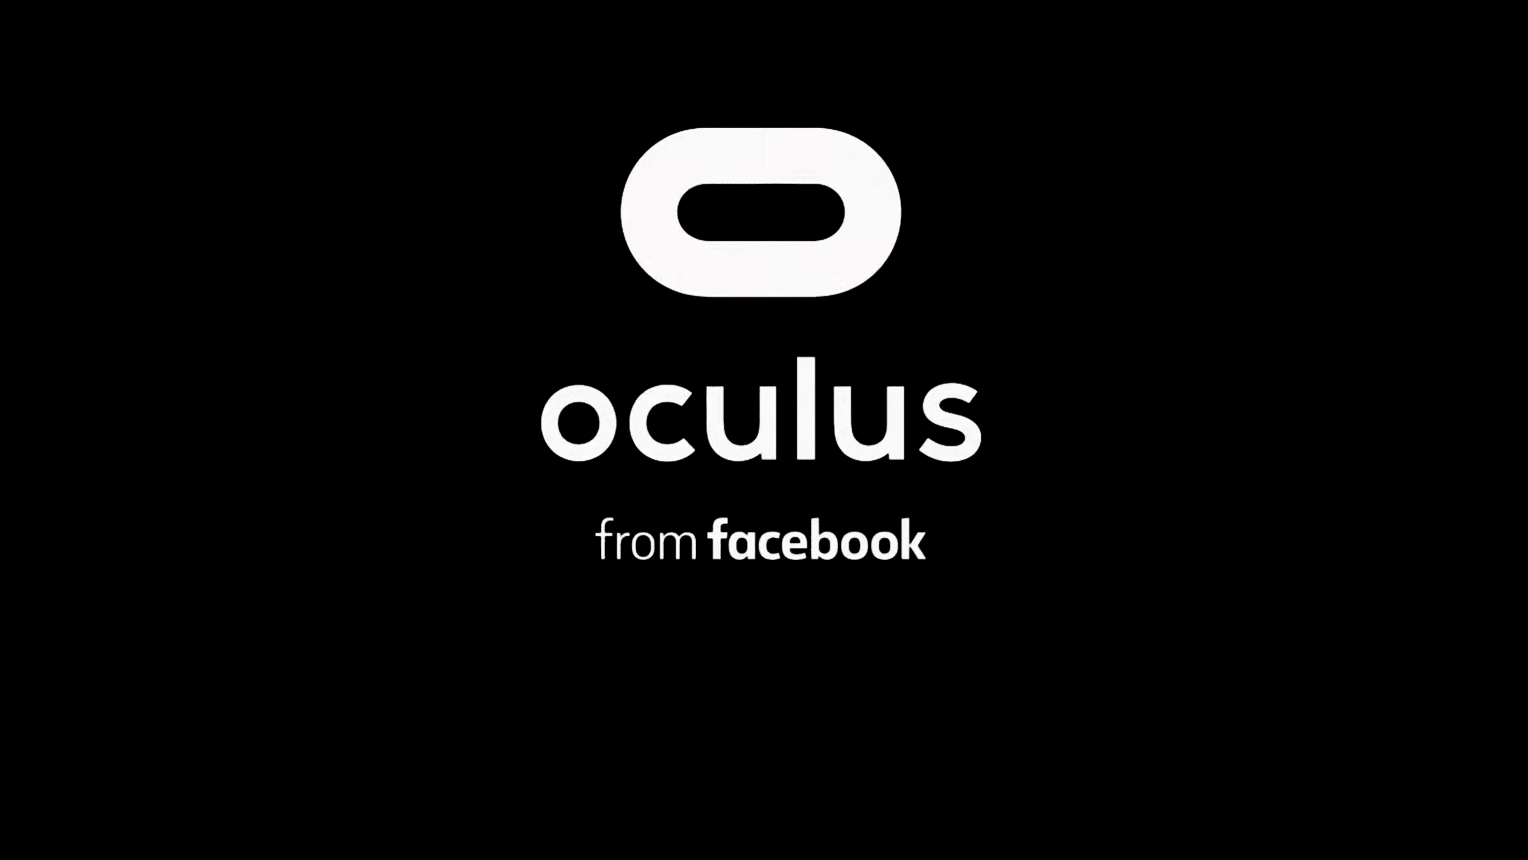 Here S Where Facebook Guaranteed Users Would Never Need A Facebook Account To Use Oculus Headsets Https Alcaudullo Com Heres Where Facebook Guaranteed Users